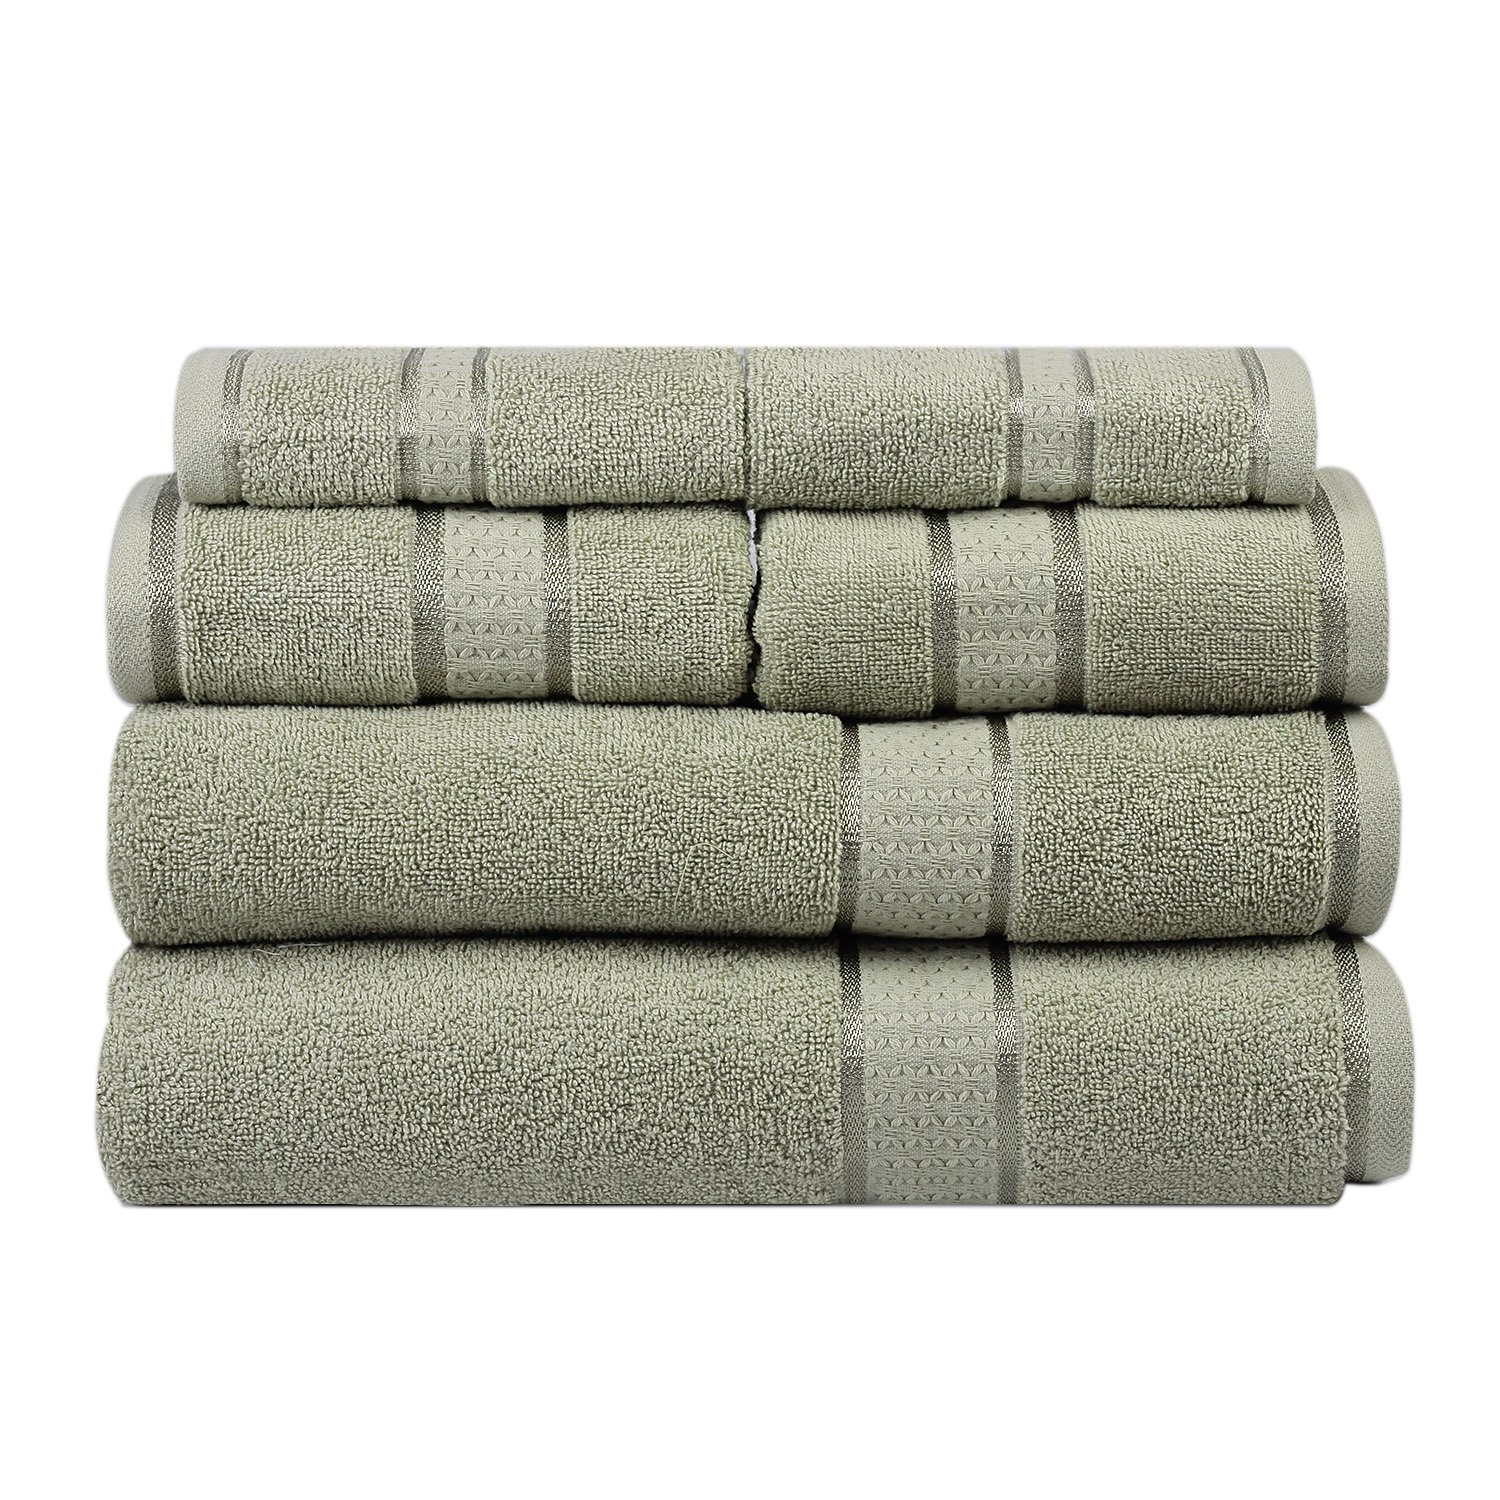 Ultra Soft 100% Cotton 6 Piece Towel Set (Sage Green): 2 Bath Towels, 2 Hand Towels, 2 Washcloths, Long-staple Cotton, Spa Hotel Quality, Super Absorbent, Machine Washable